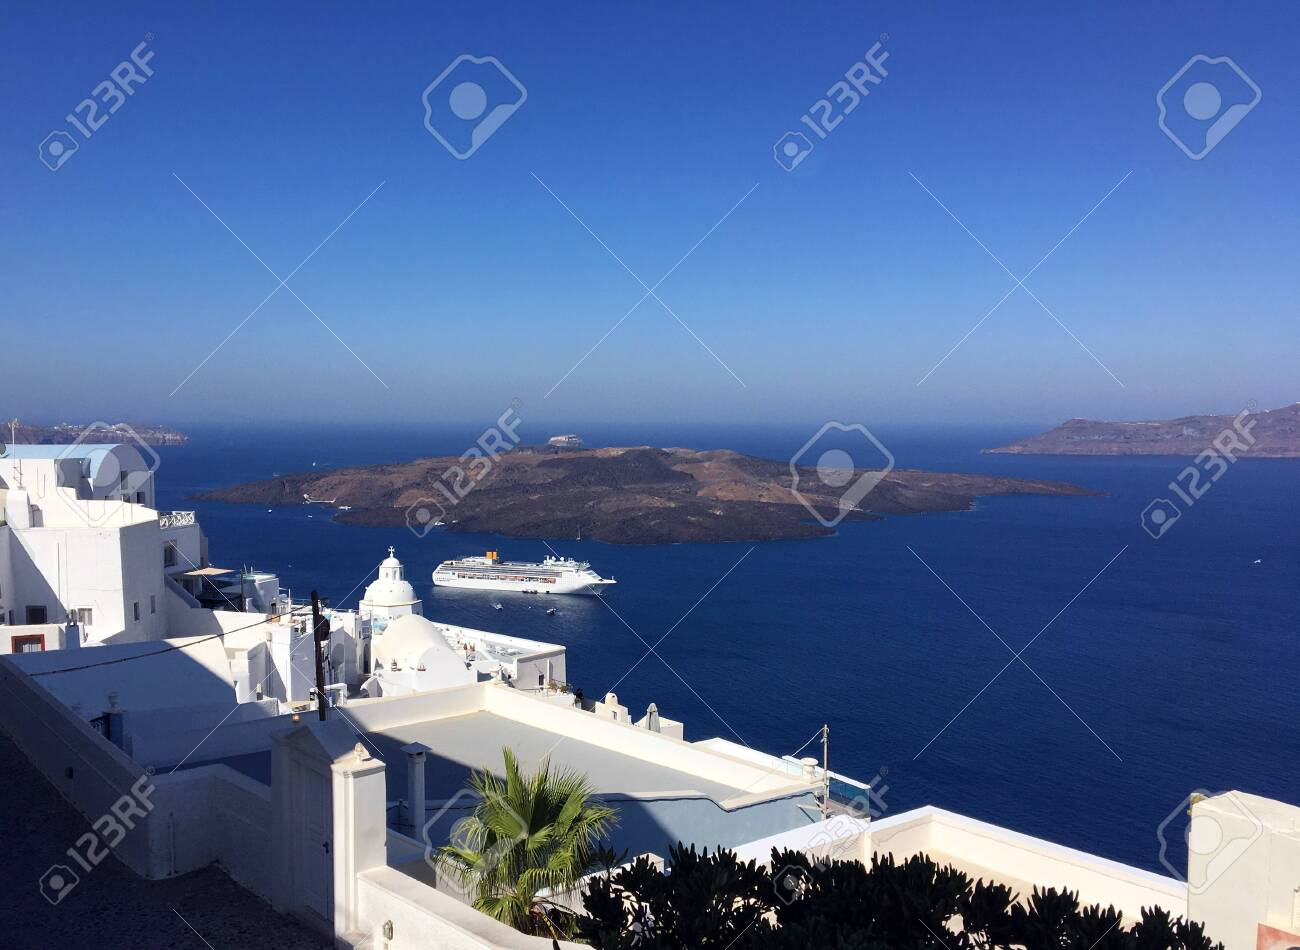 Typical Houses Of Oia In Santorini Volcanic Island Of The Aegean